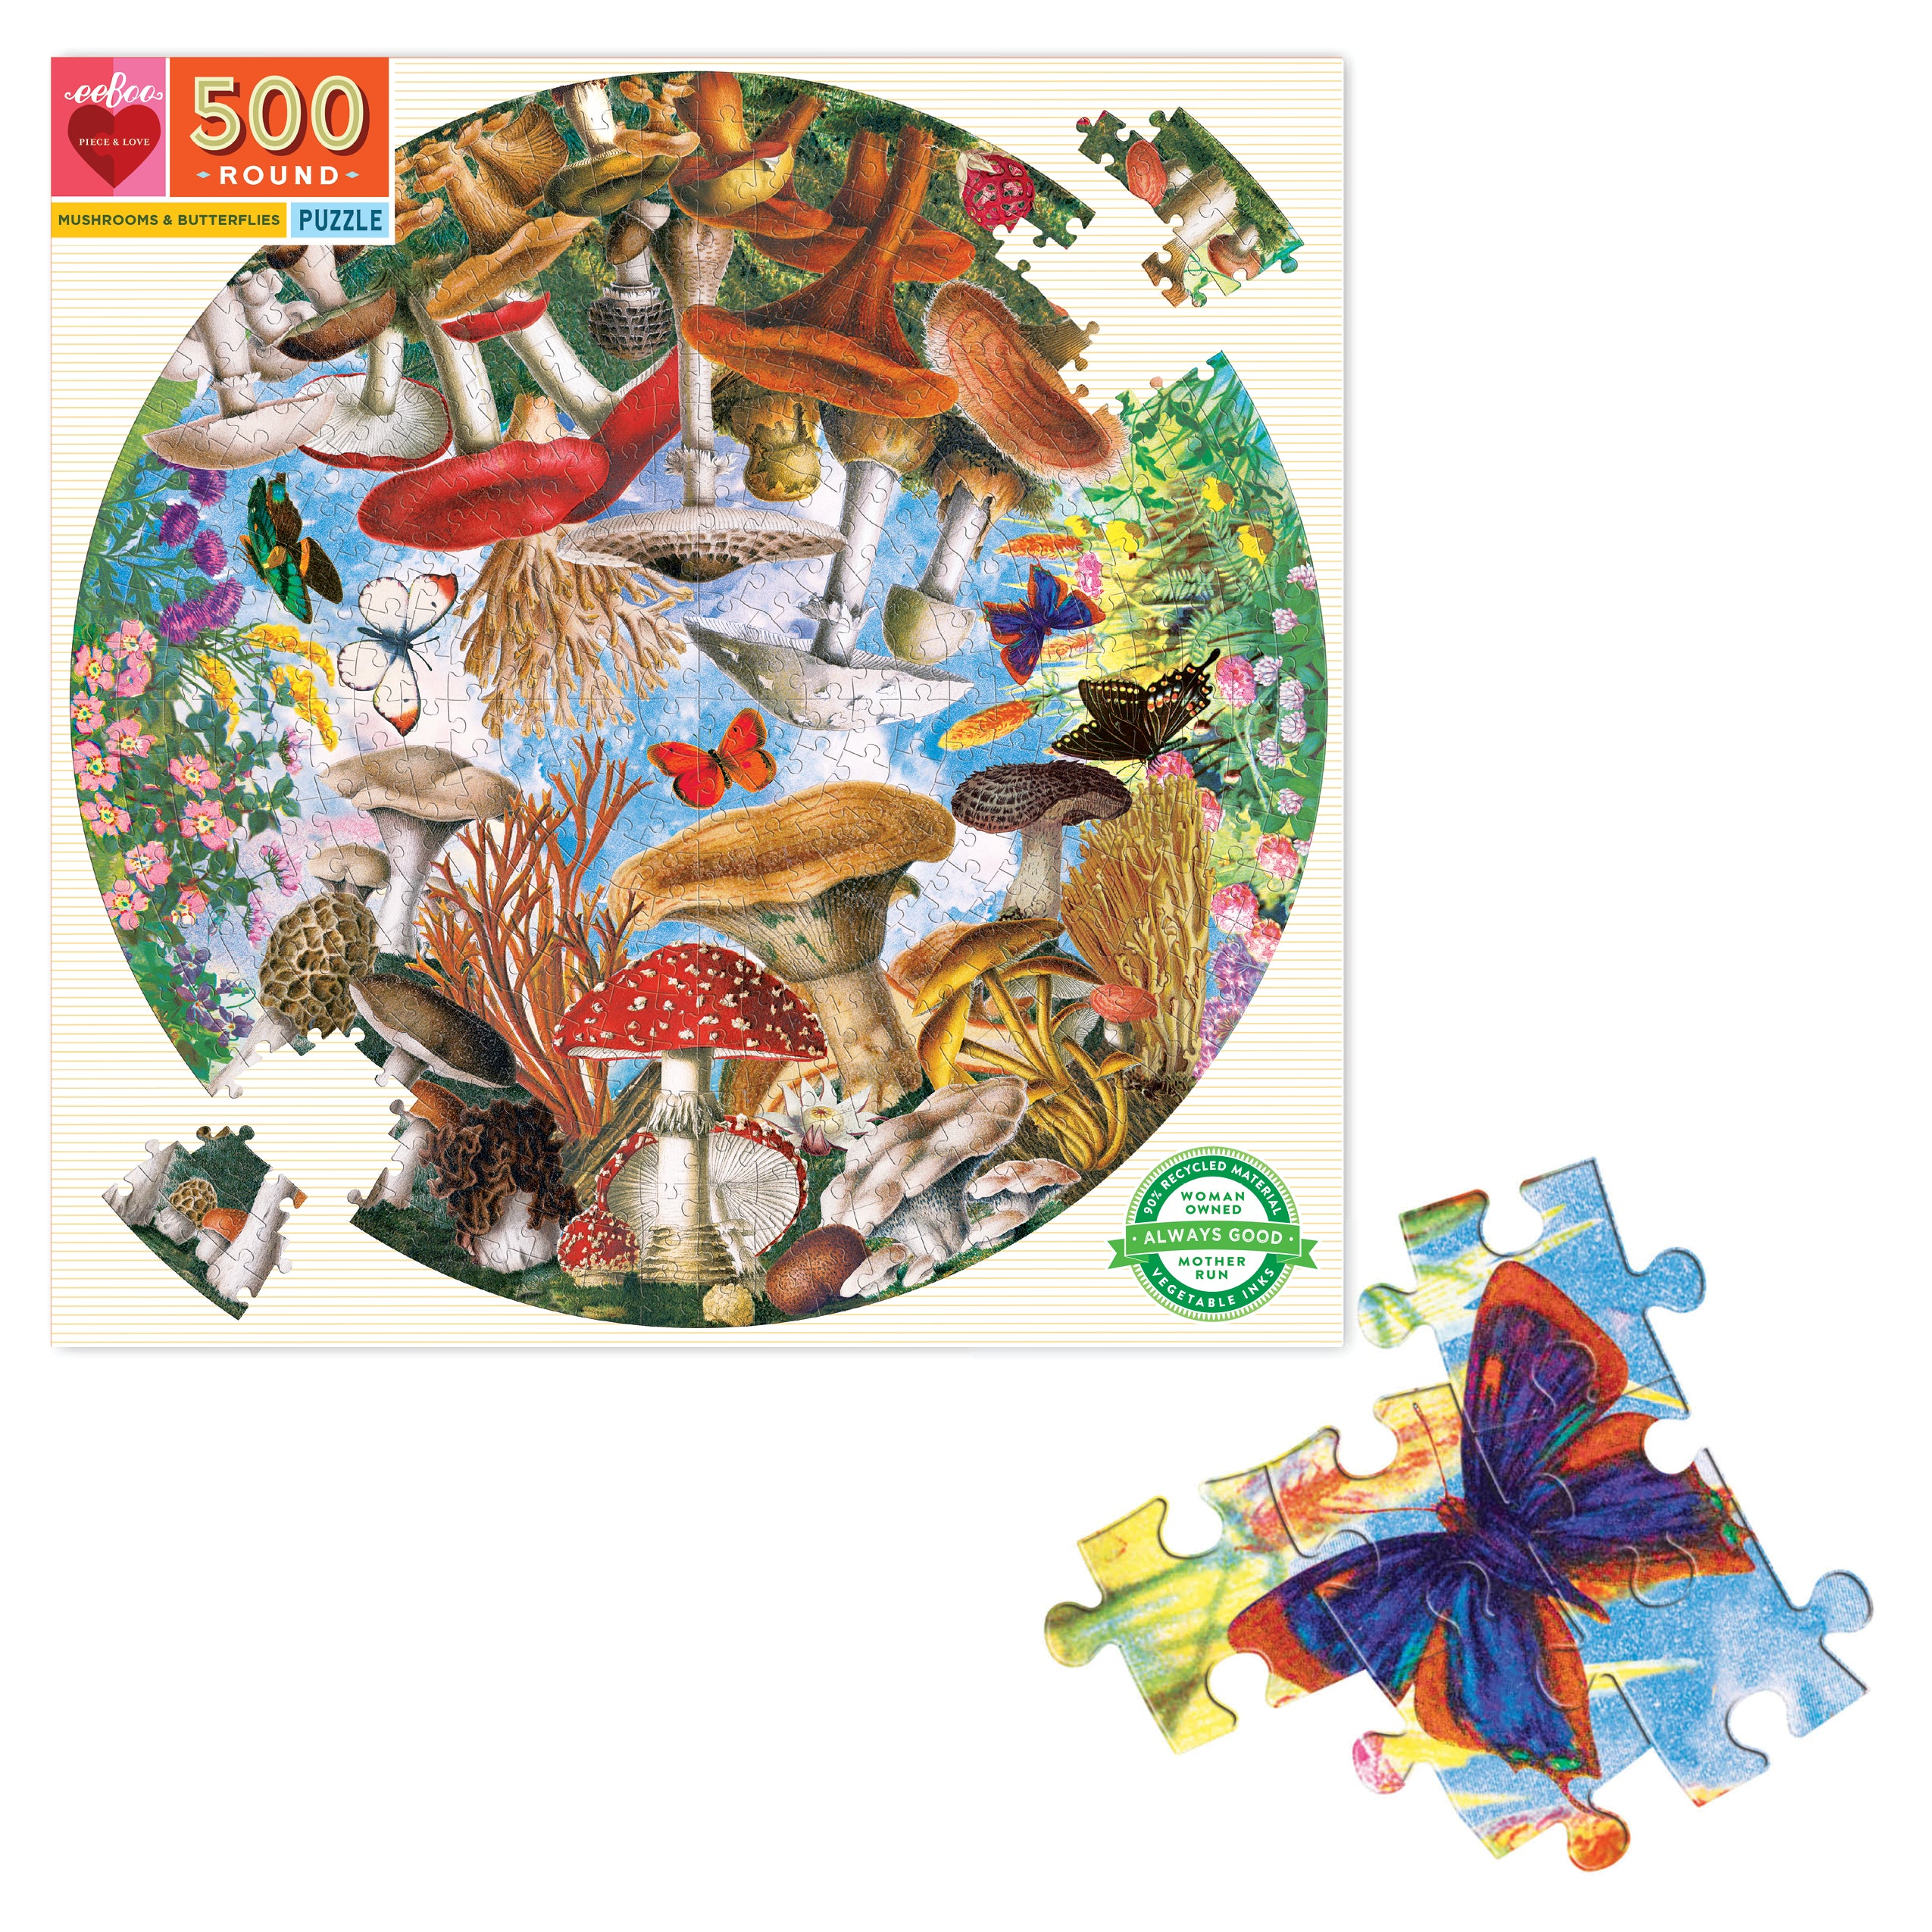 500 Pc Round Puzzle - Mushroom & Butterflies